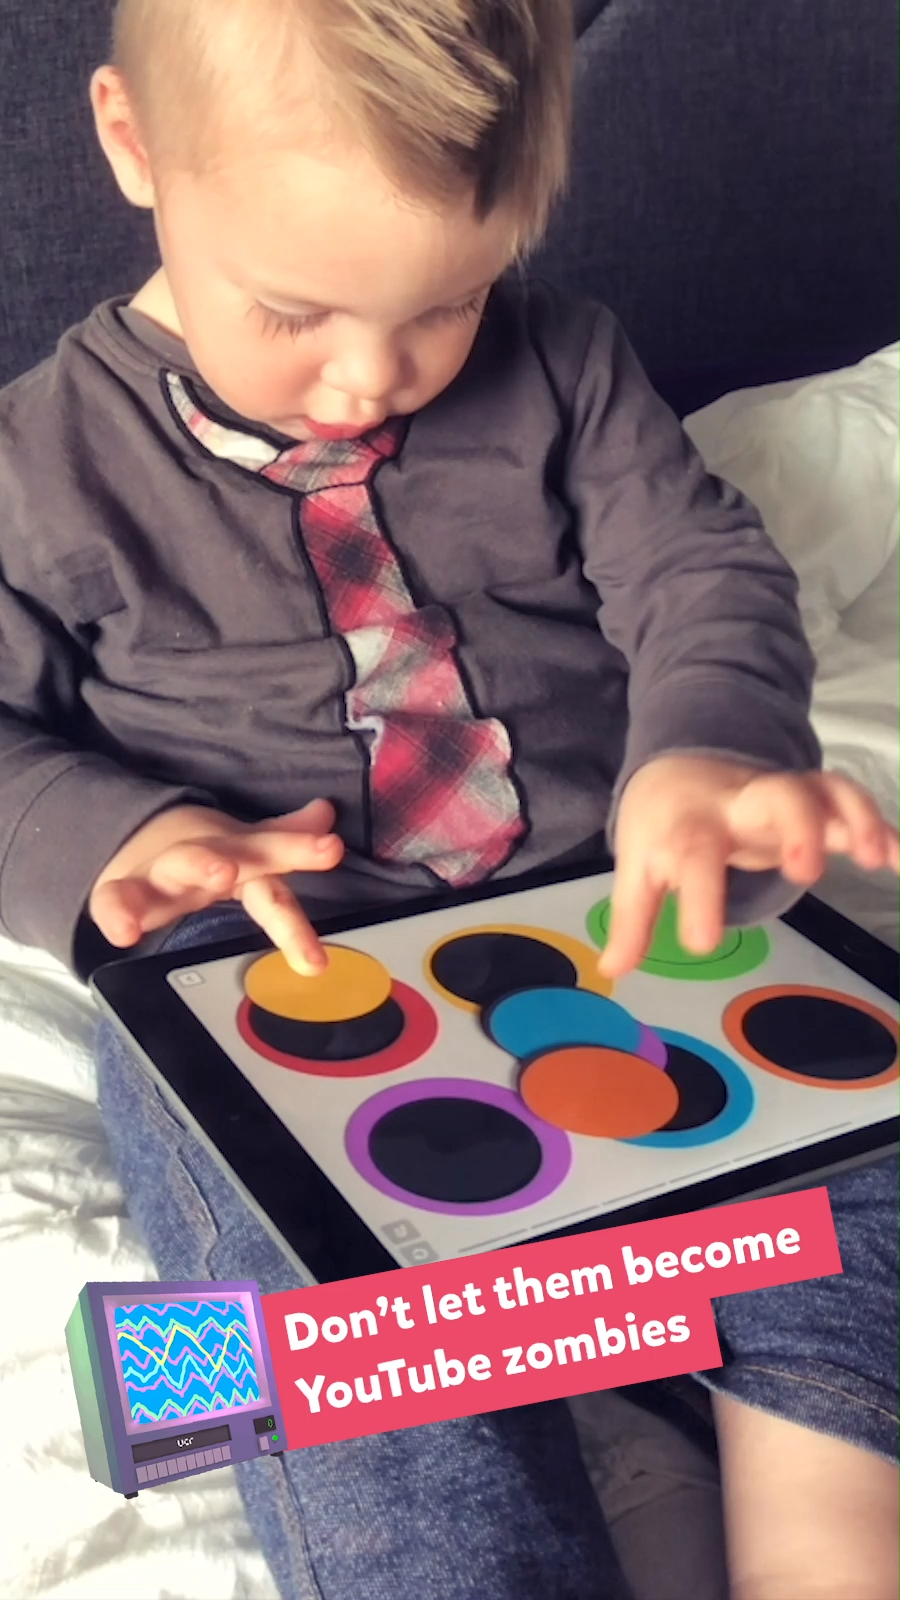 TinyTap  Kids Learning Games is part of Learning games for kids - Read reviews, compare customer ratings, see screenshots, and learn more about TinyTap  Kids Learning Games  Download TinyTap  Kids Learning Games and enjoy it on your iPhone, iPad, and iPod touch